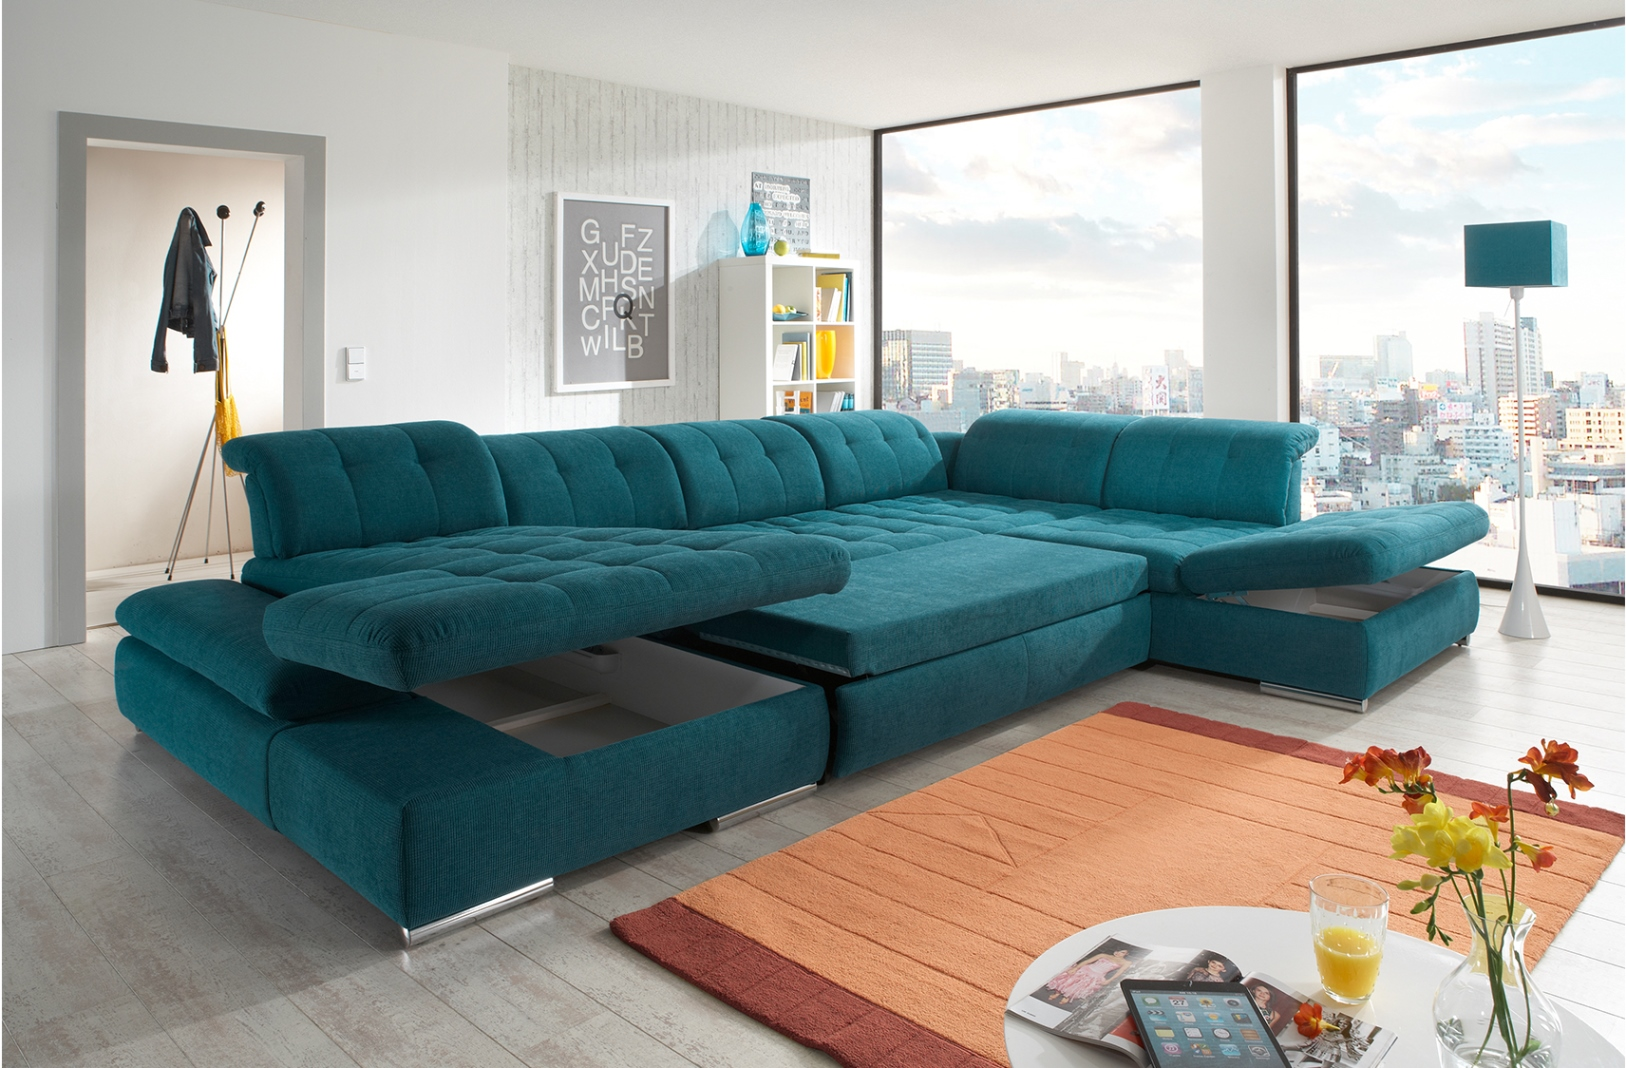 Double Chaise Sectional on Living Room With Area Rug